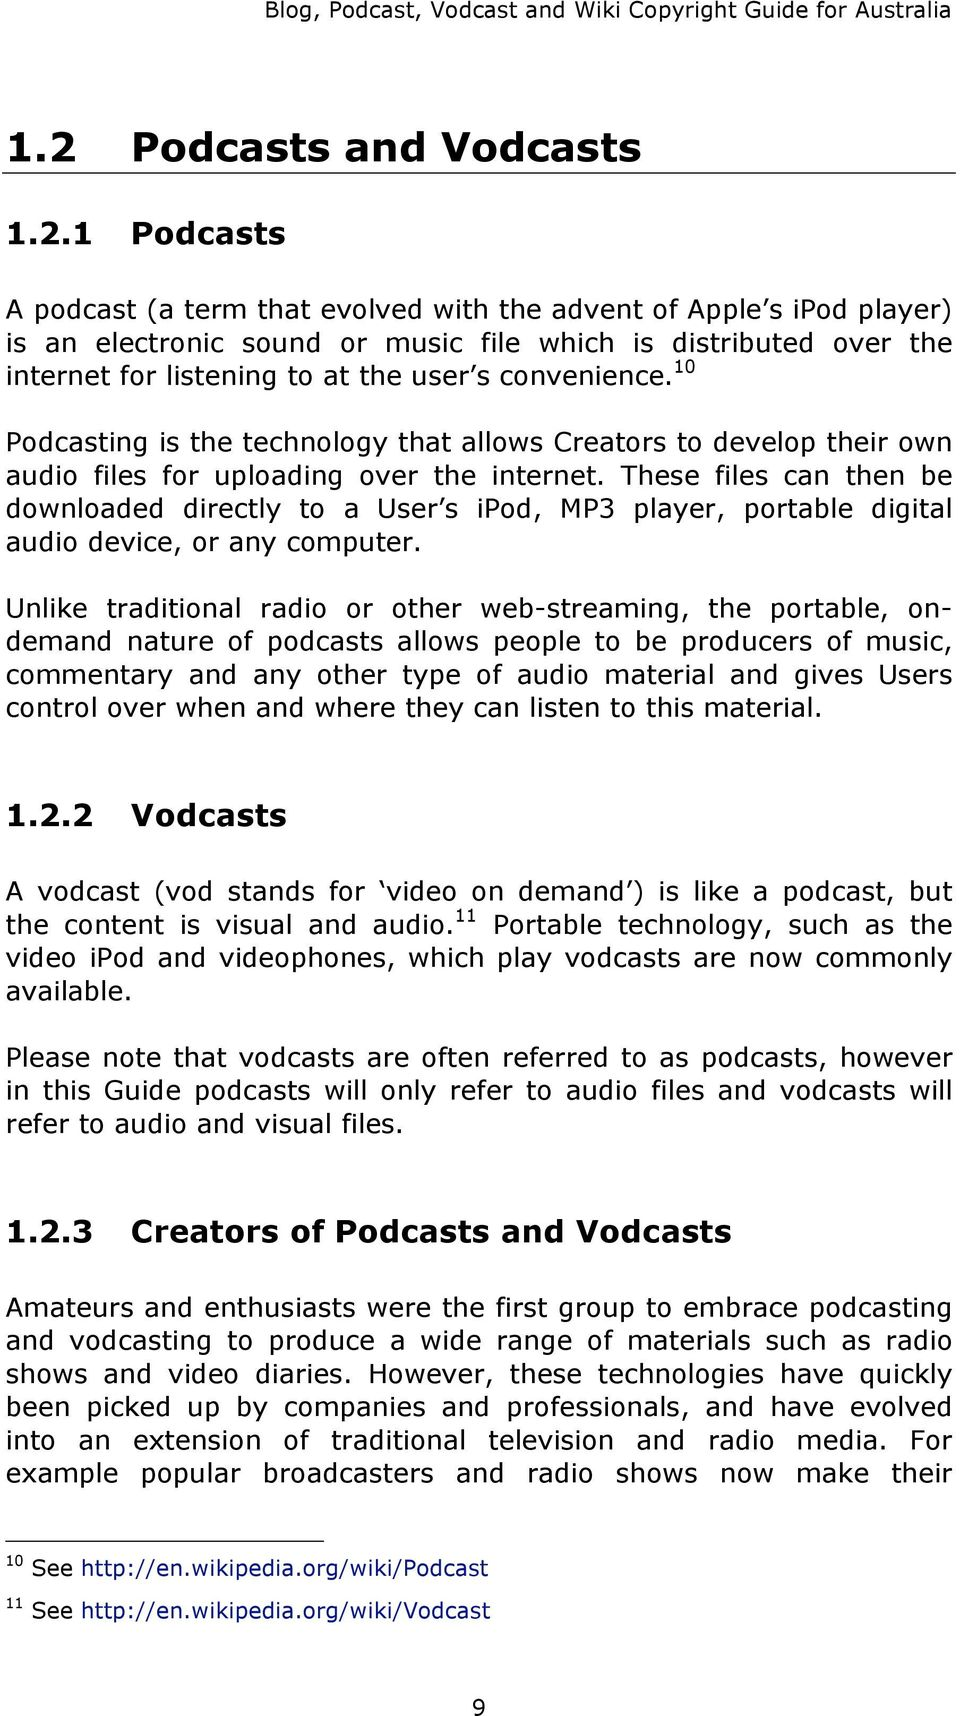 1 Podcasts A podcast (a term that evolved with the advent of Apple s ipod player) is an electronic sound or music file which is distributed over the internet for listening to at the user s